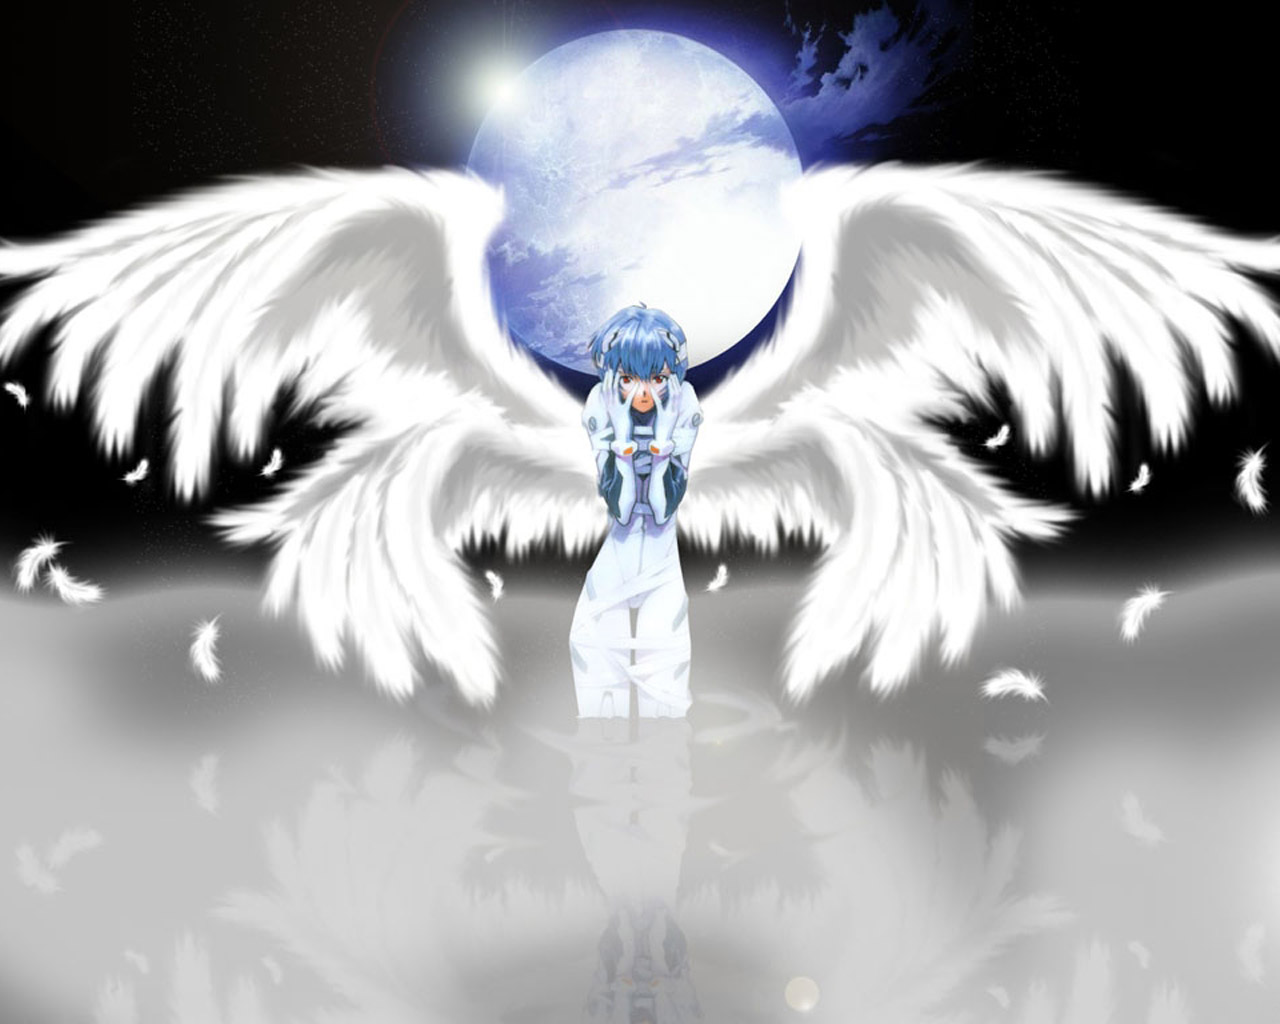 Wallpaper: Wallpaper Anime Angel